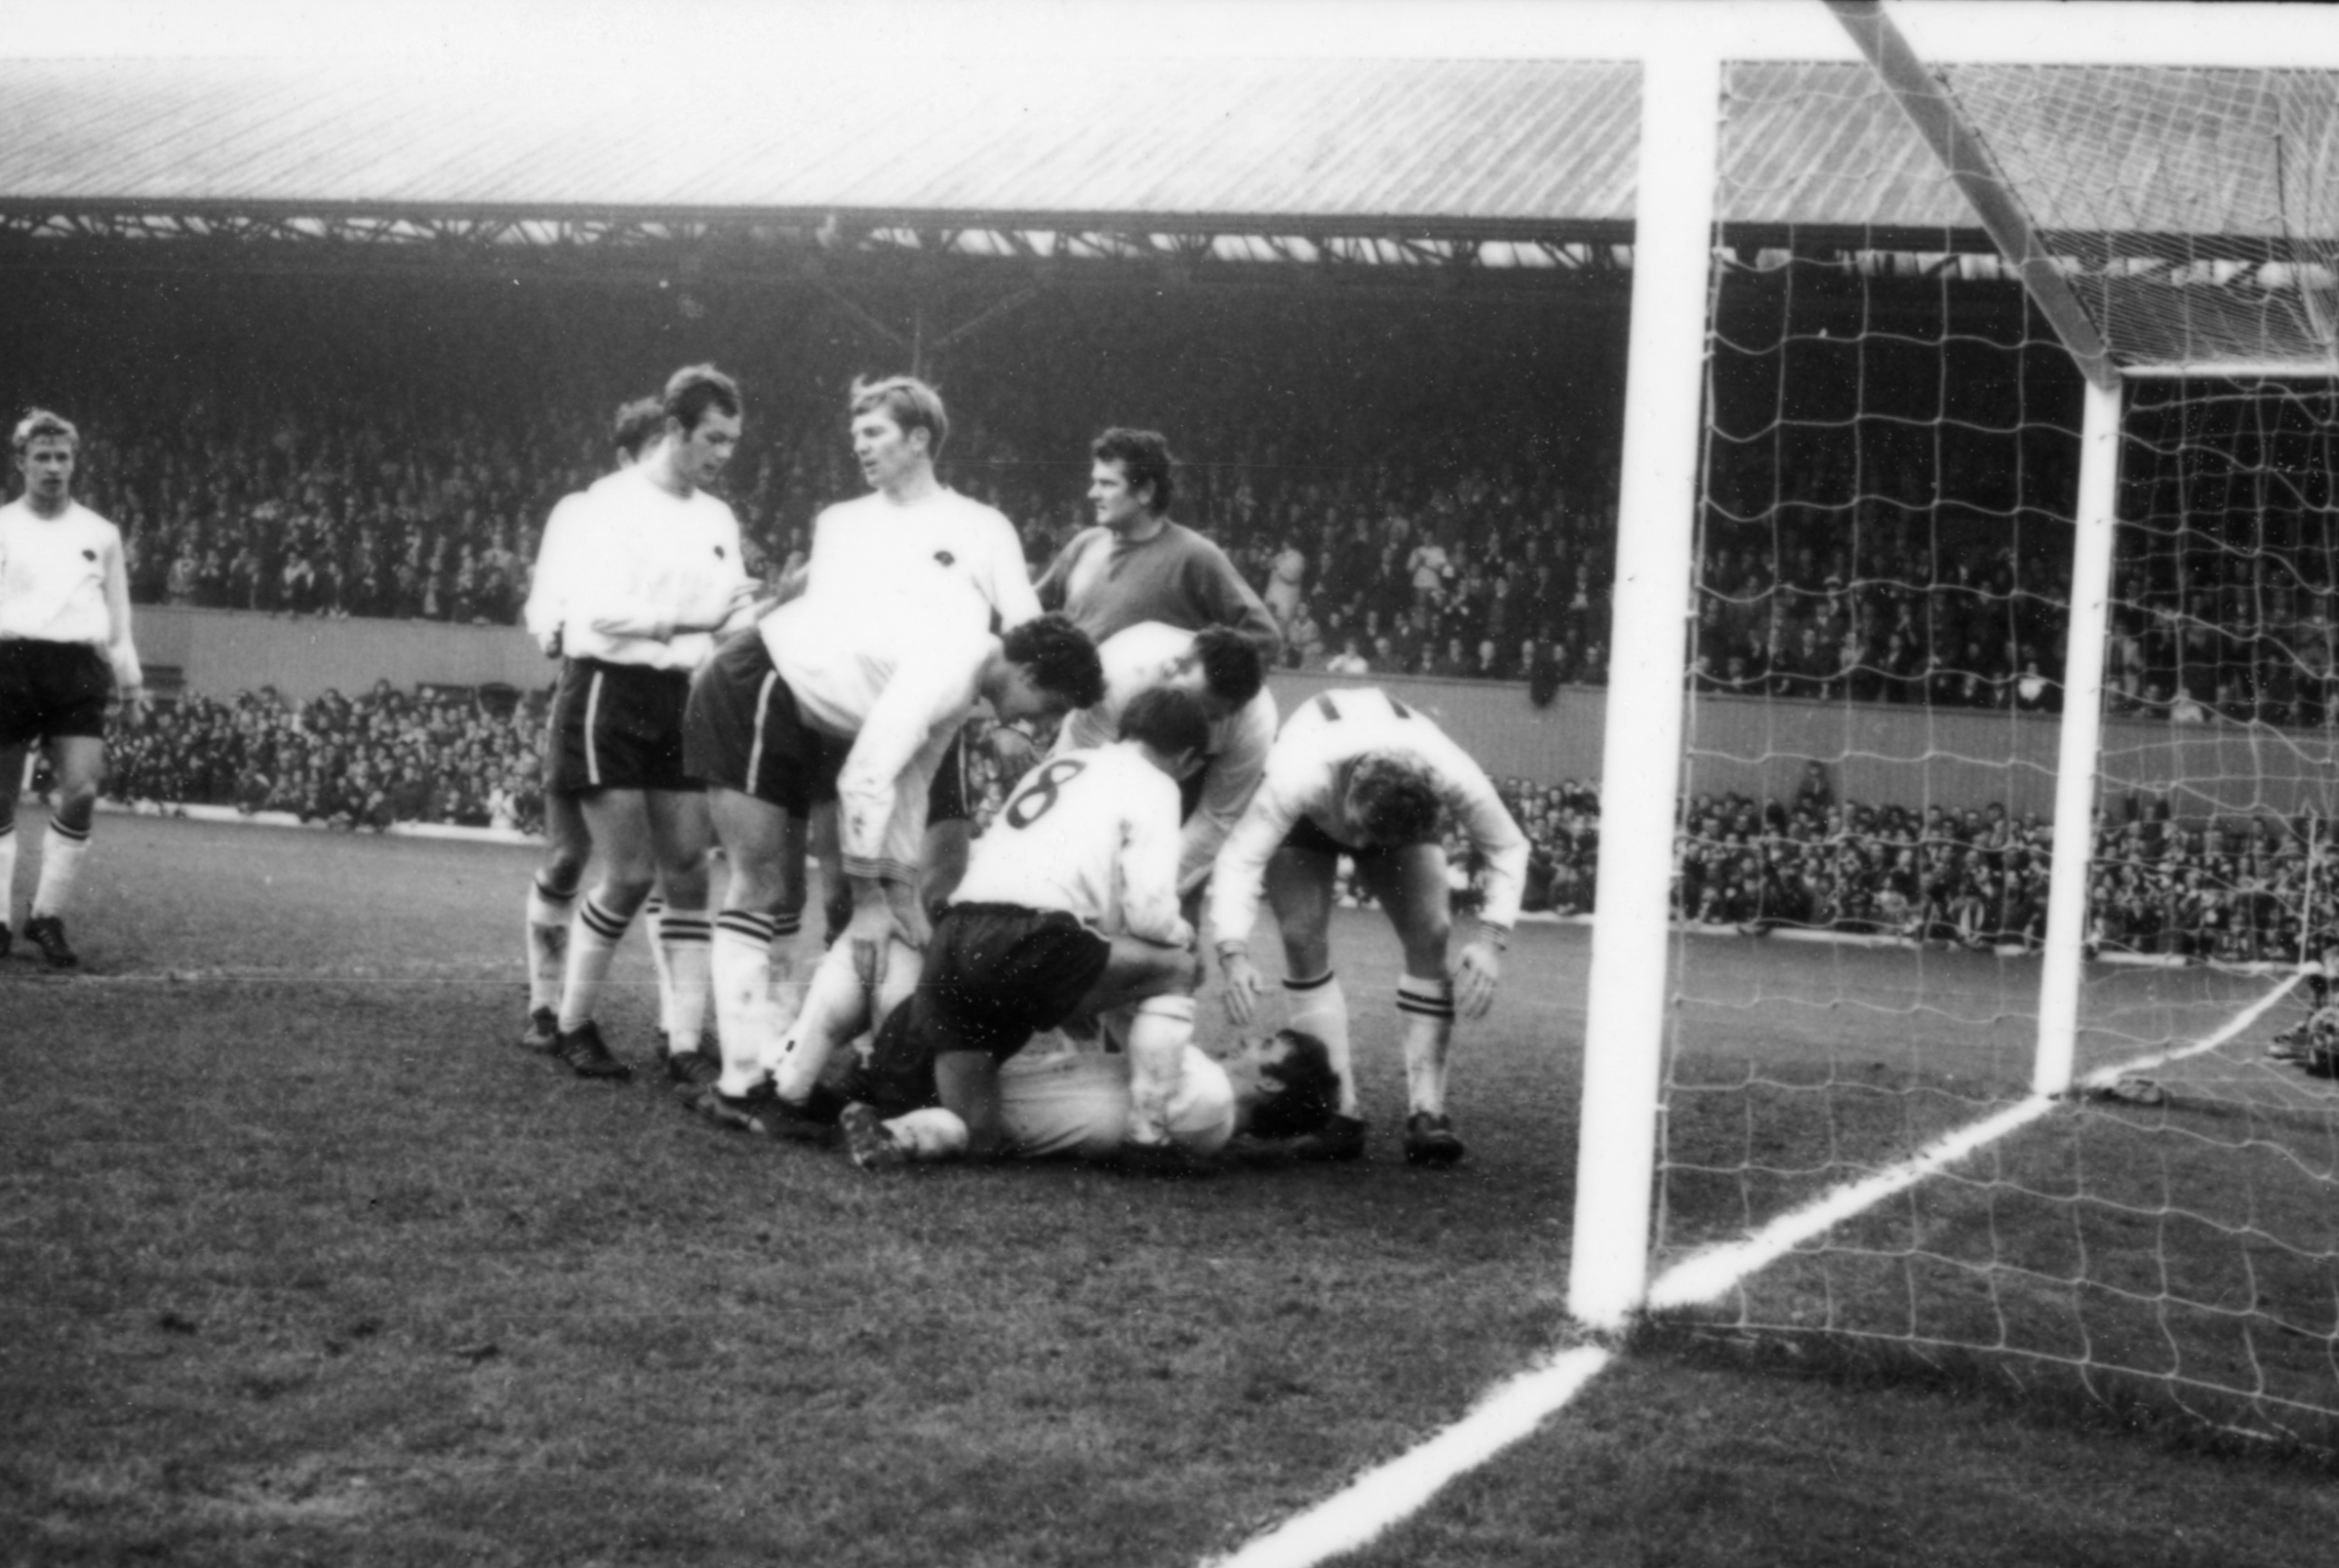 A buried Kevin Hector. 4-0 against Liverpool, 1 November 1969